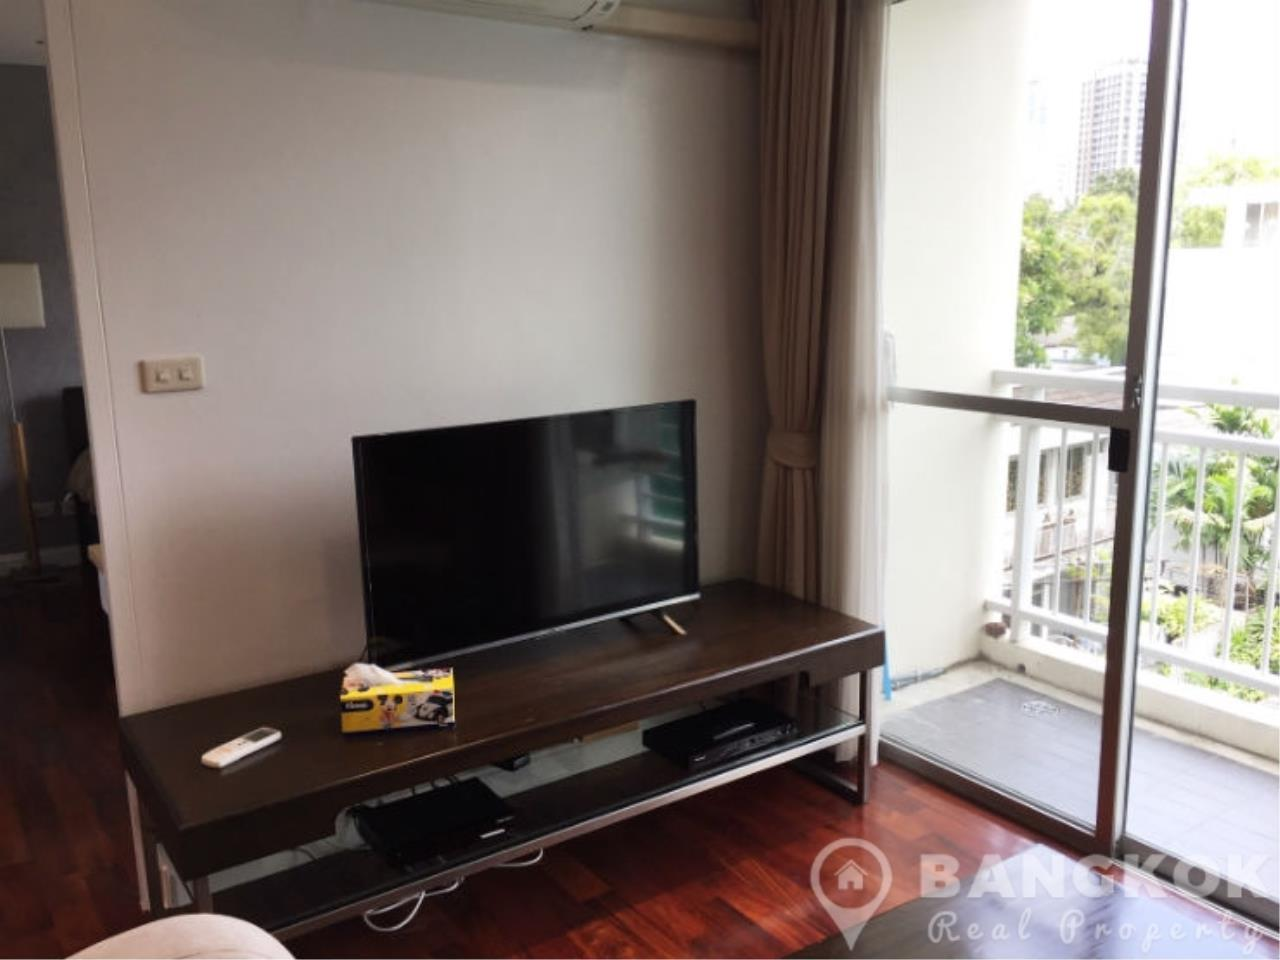 Bangkok Real Property Agency's 49 Plus | Spacious High Floor 1 Bed 1 Bath in Thonglor 4